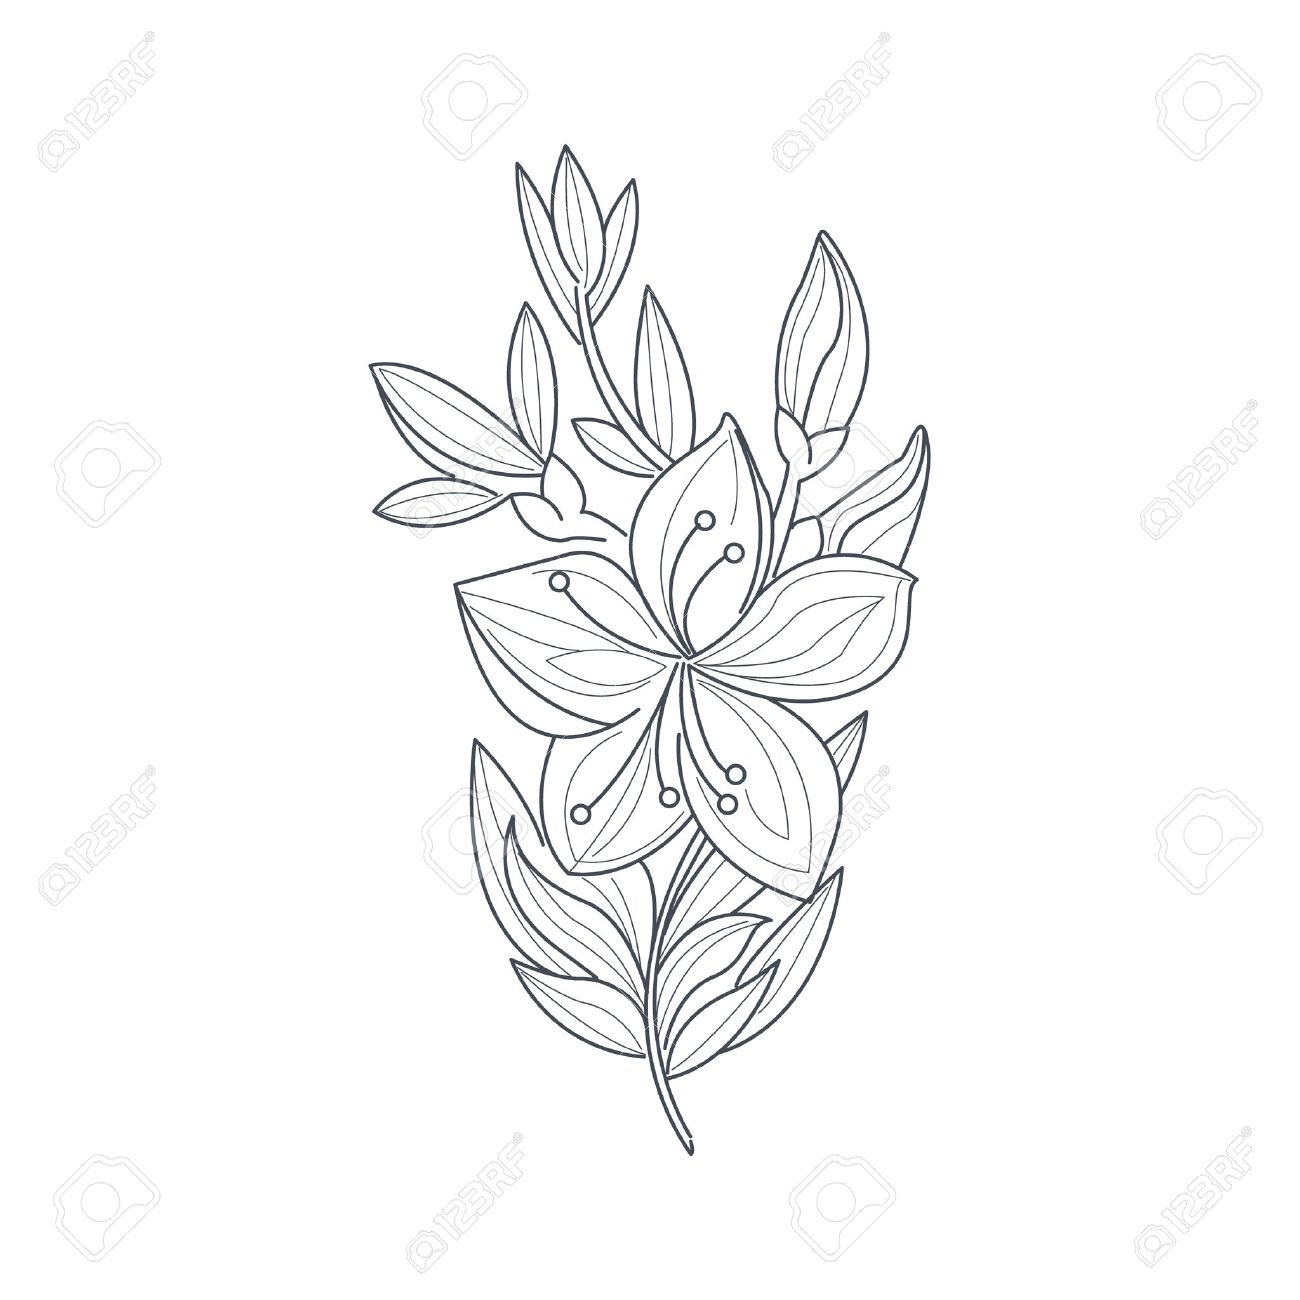 1300x1300 Jasmine Flower Monochrome Drawing For Coloring Book Hand Drawn